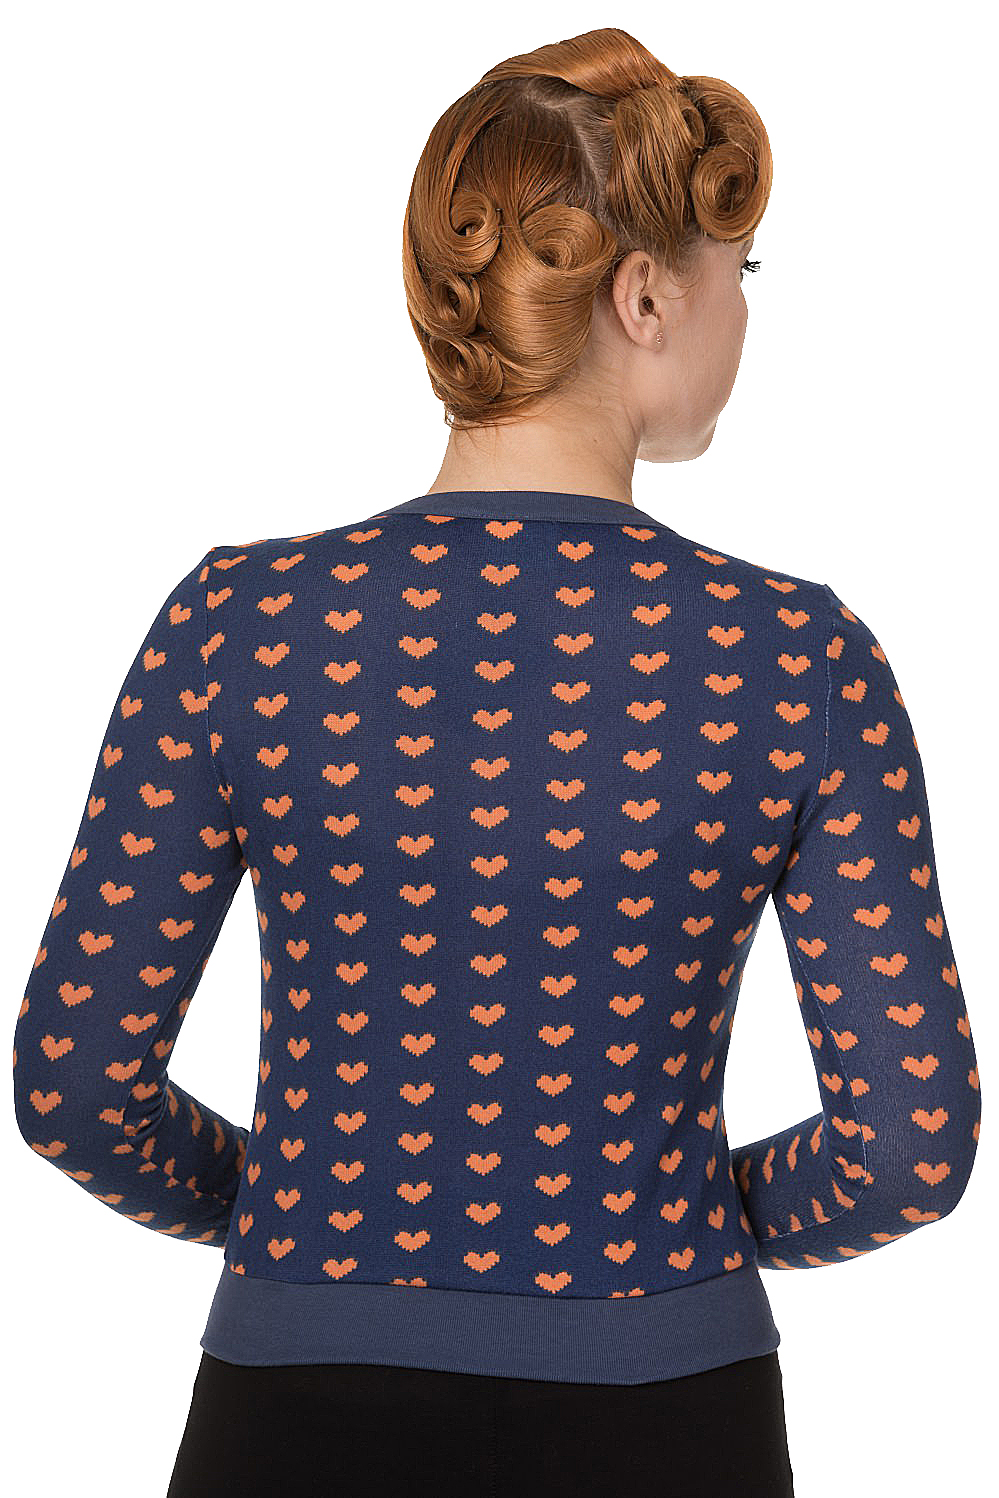 Banned Mint Navy Blue Lovehearts Cardigan